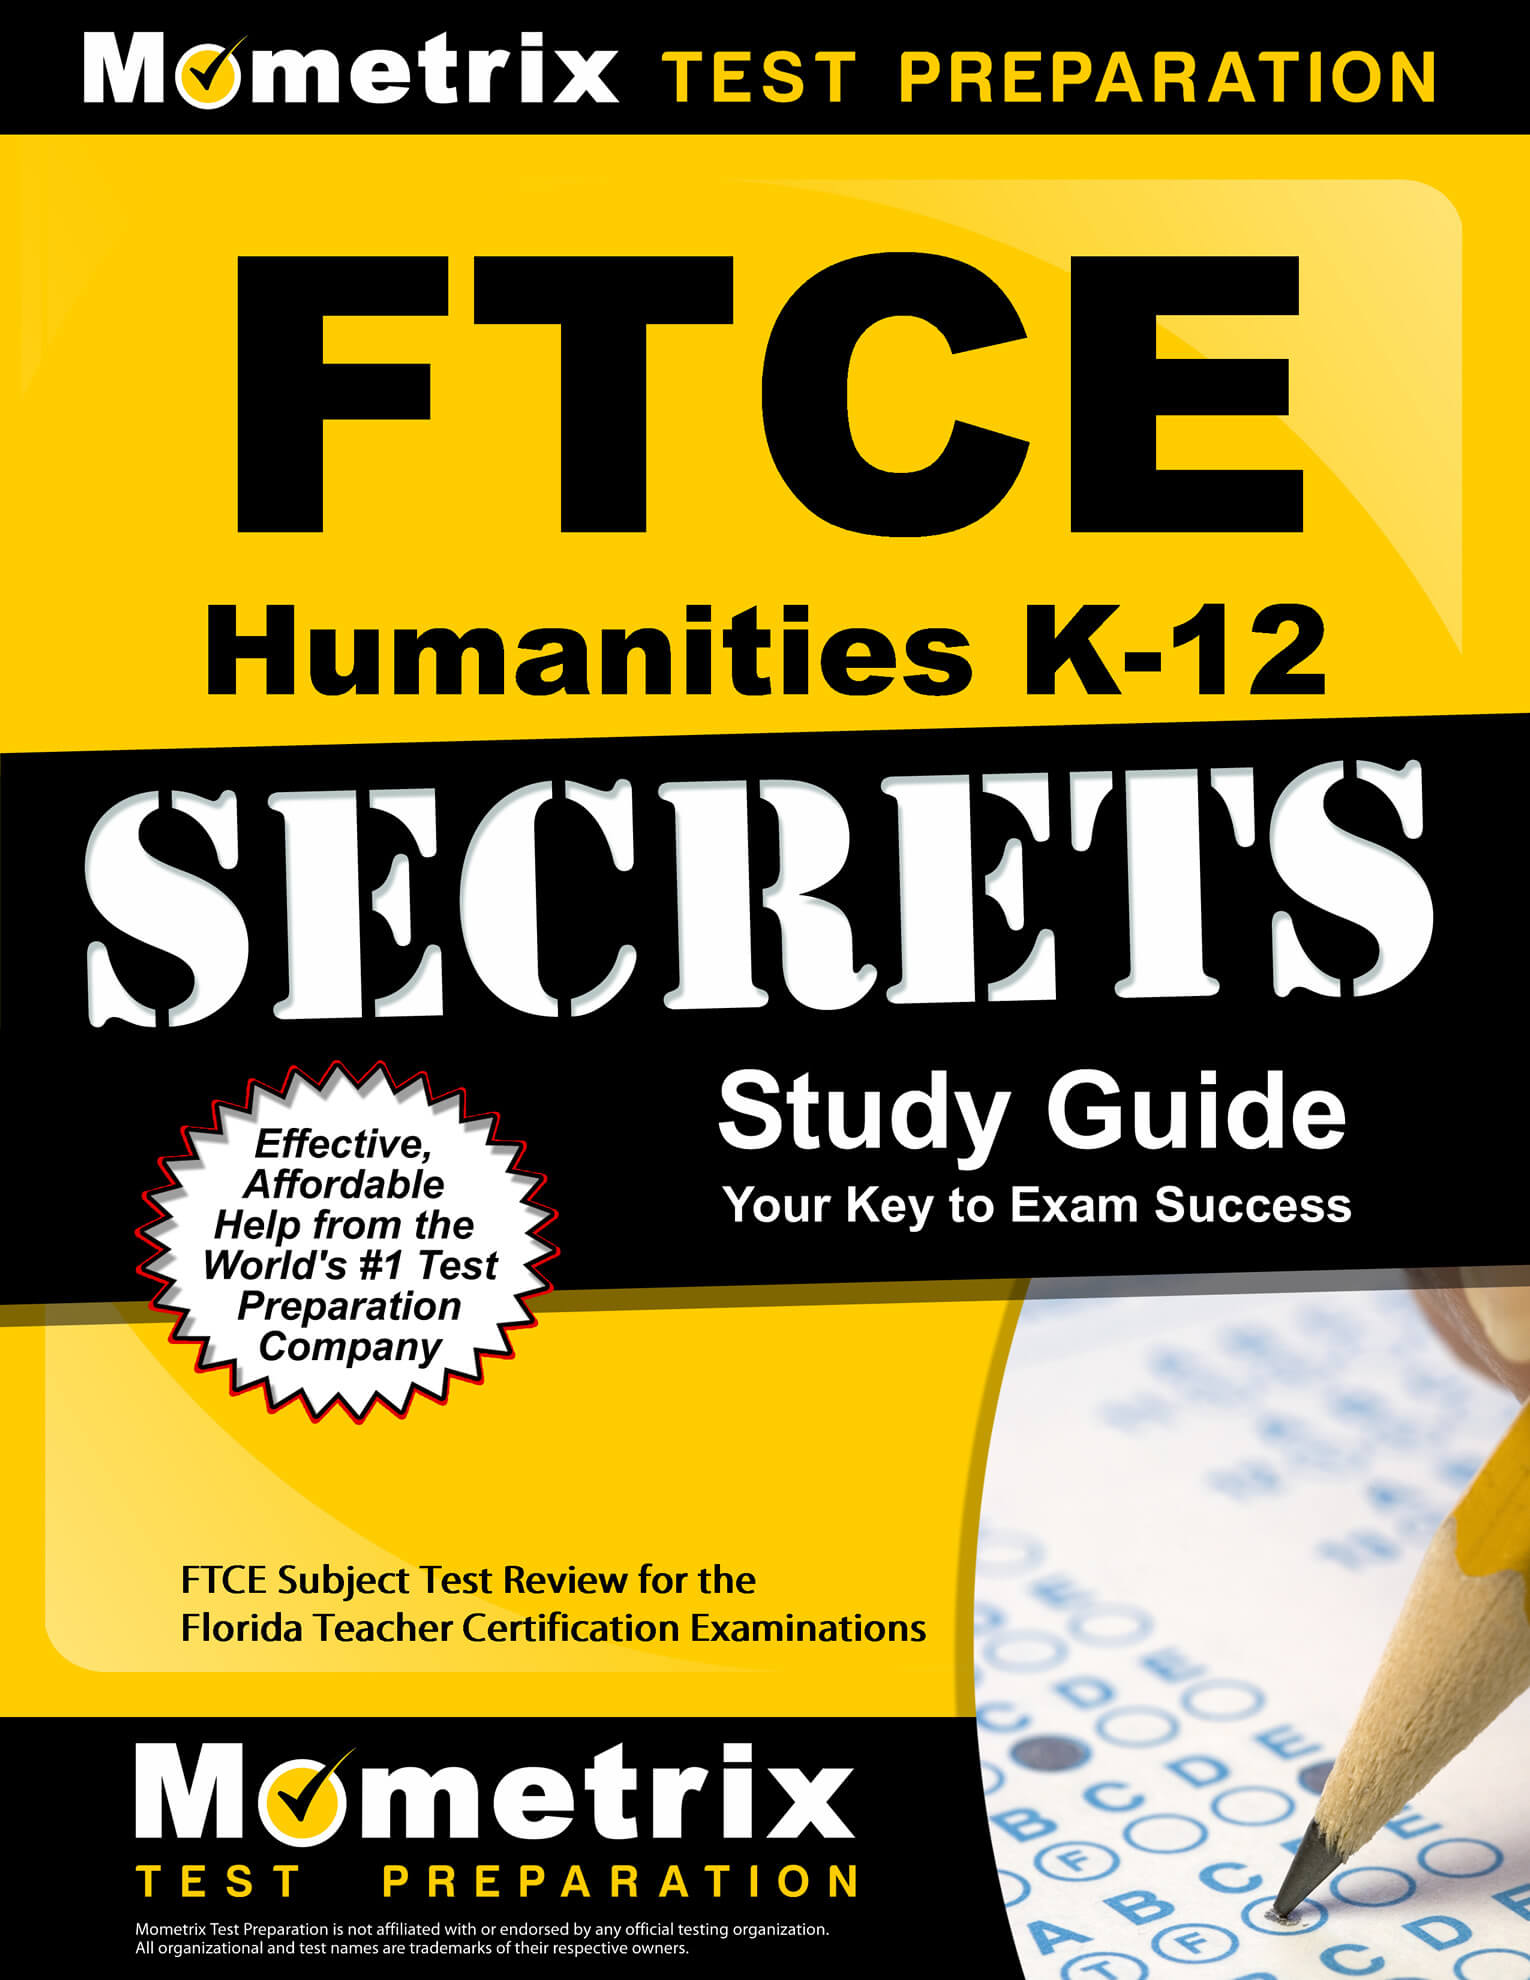 FTCE Humanities K-12 Study Guide